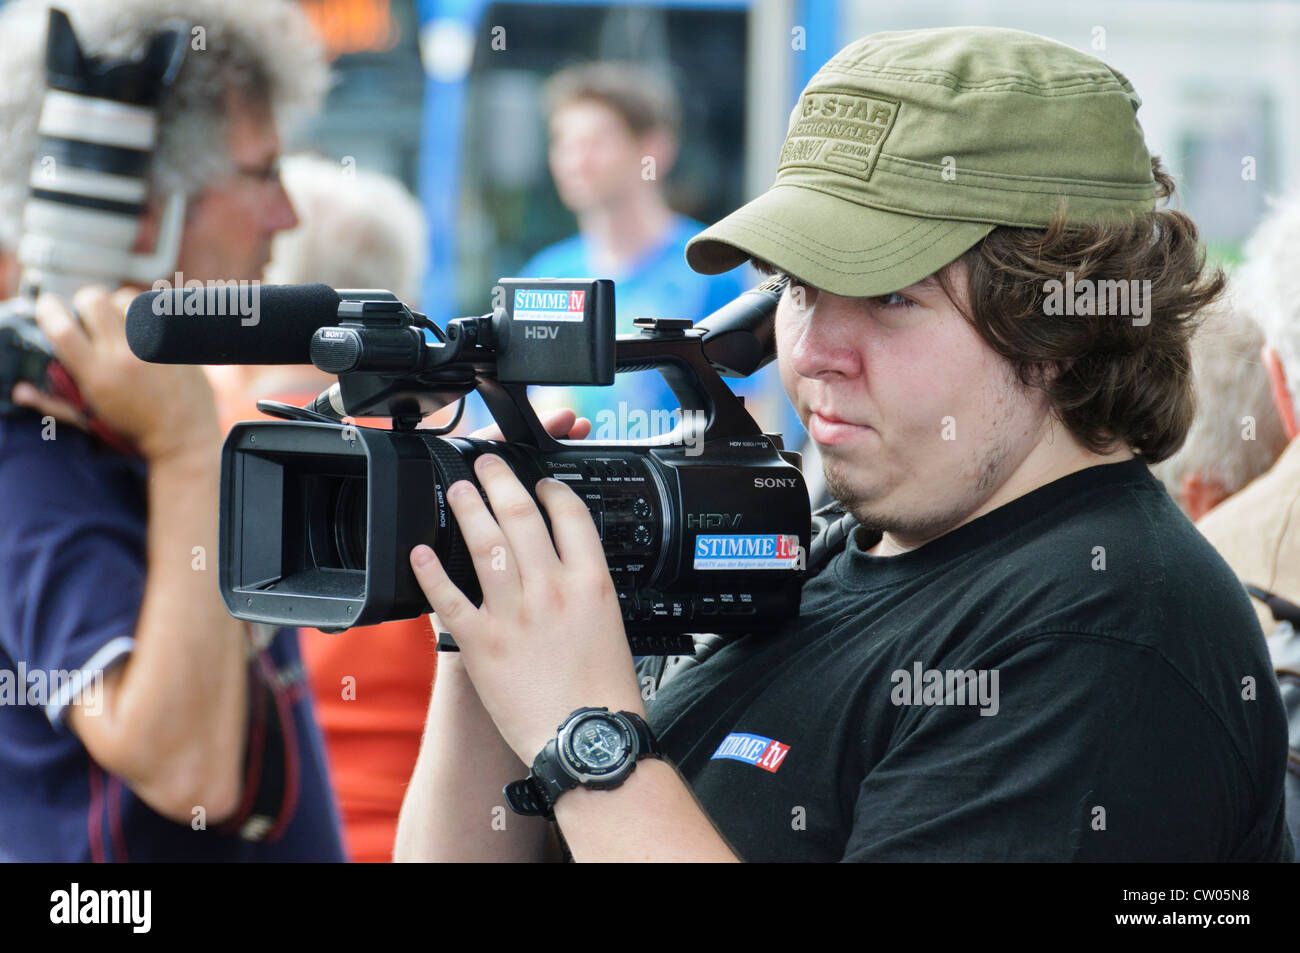 Overweight German cameraman from the regional broadcast station STIMME.TV shooting with semi professional Sony HDV - Stock Image